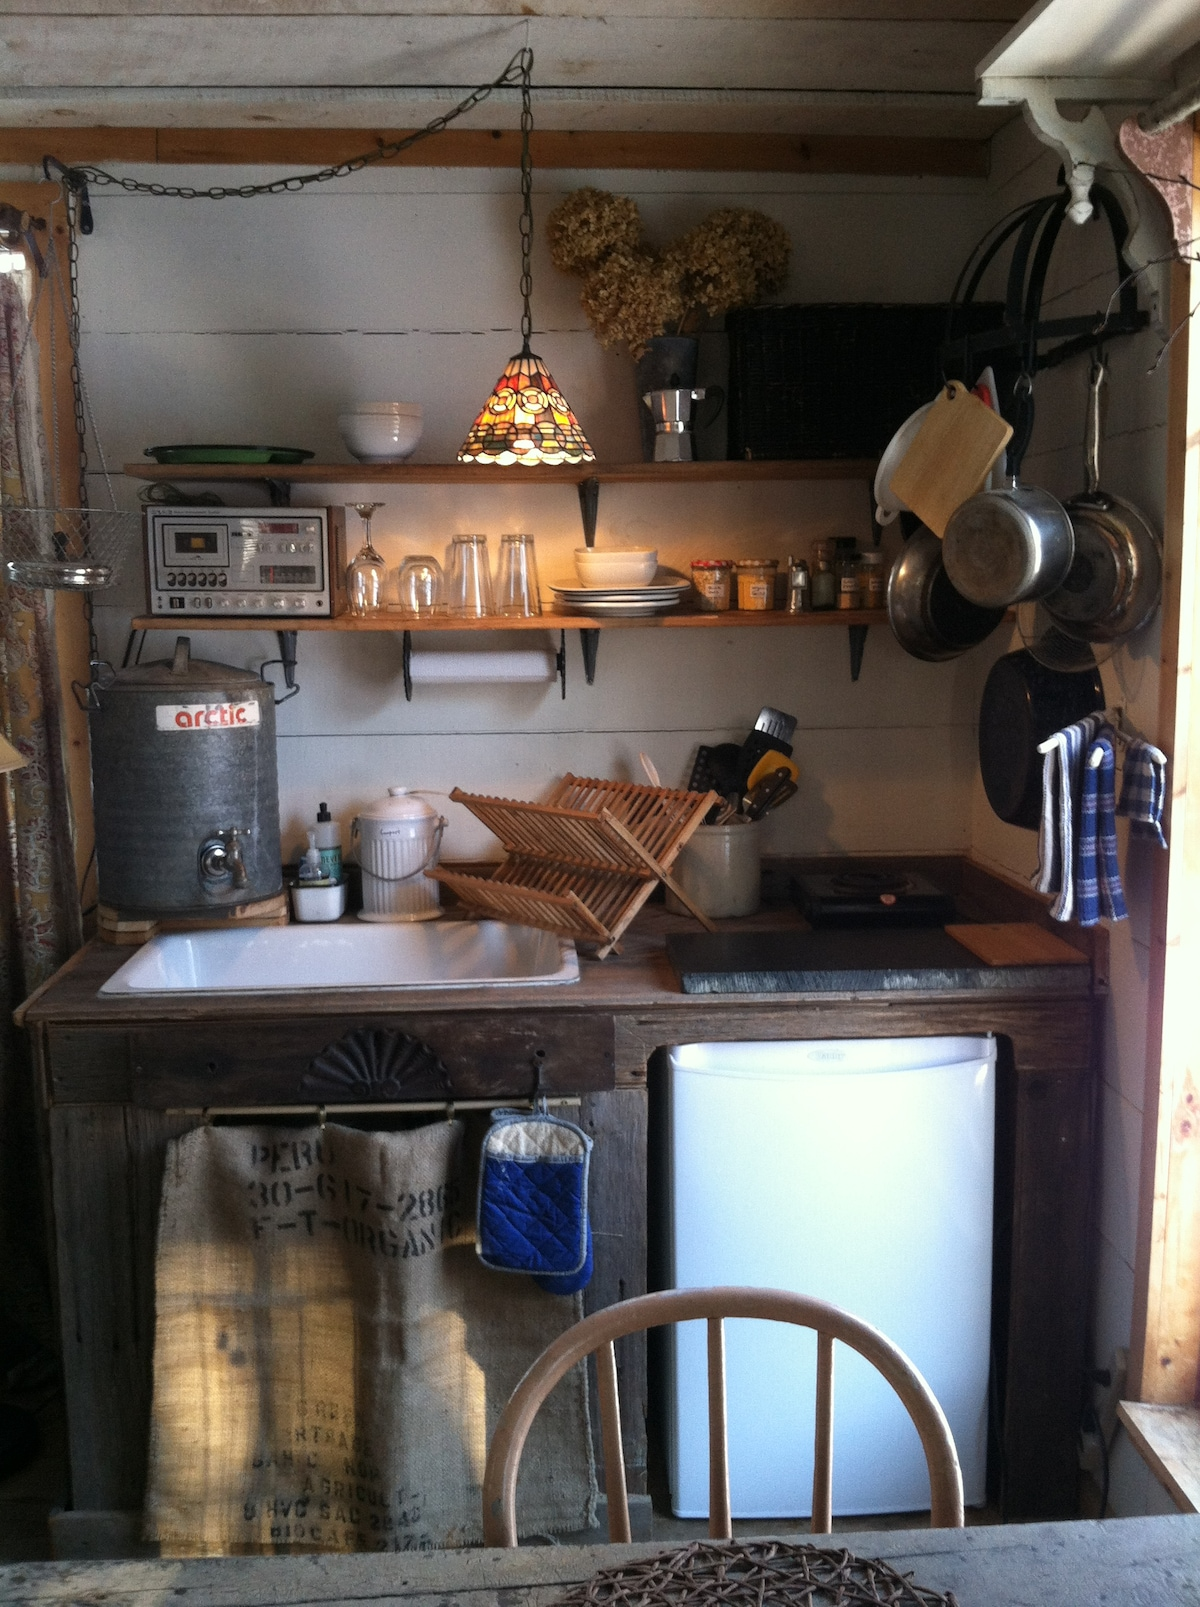 A brand new feature in the rustic cabin! a working, off grid type sink area, with lovely barn wood...enjoy the functional simplicity!